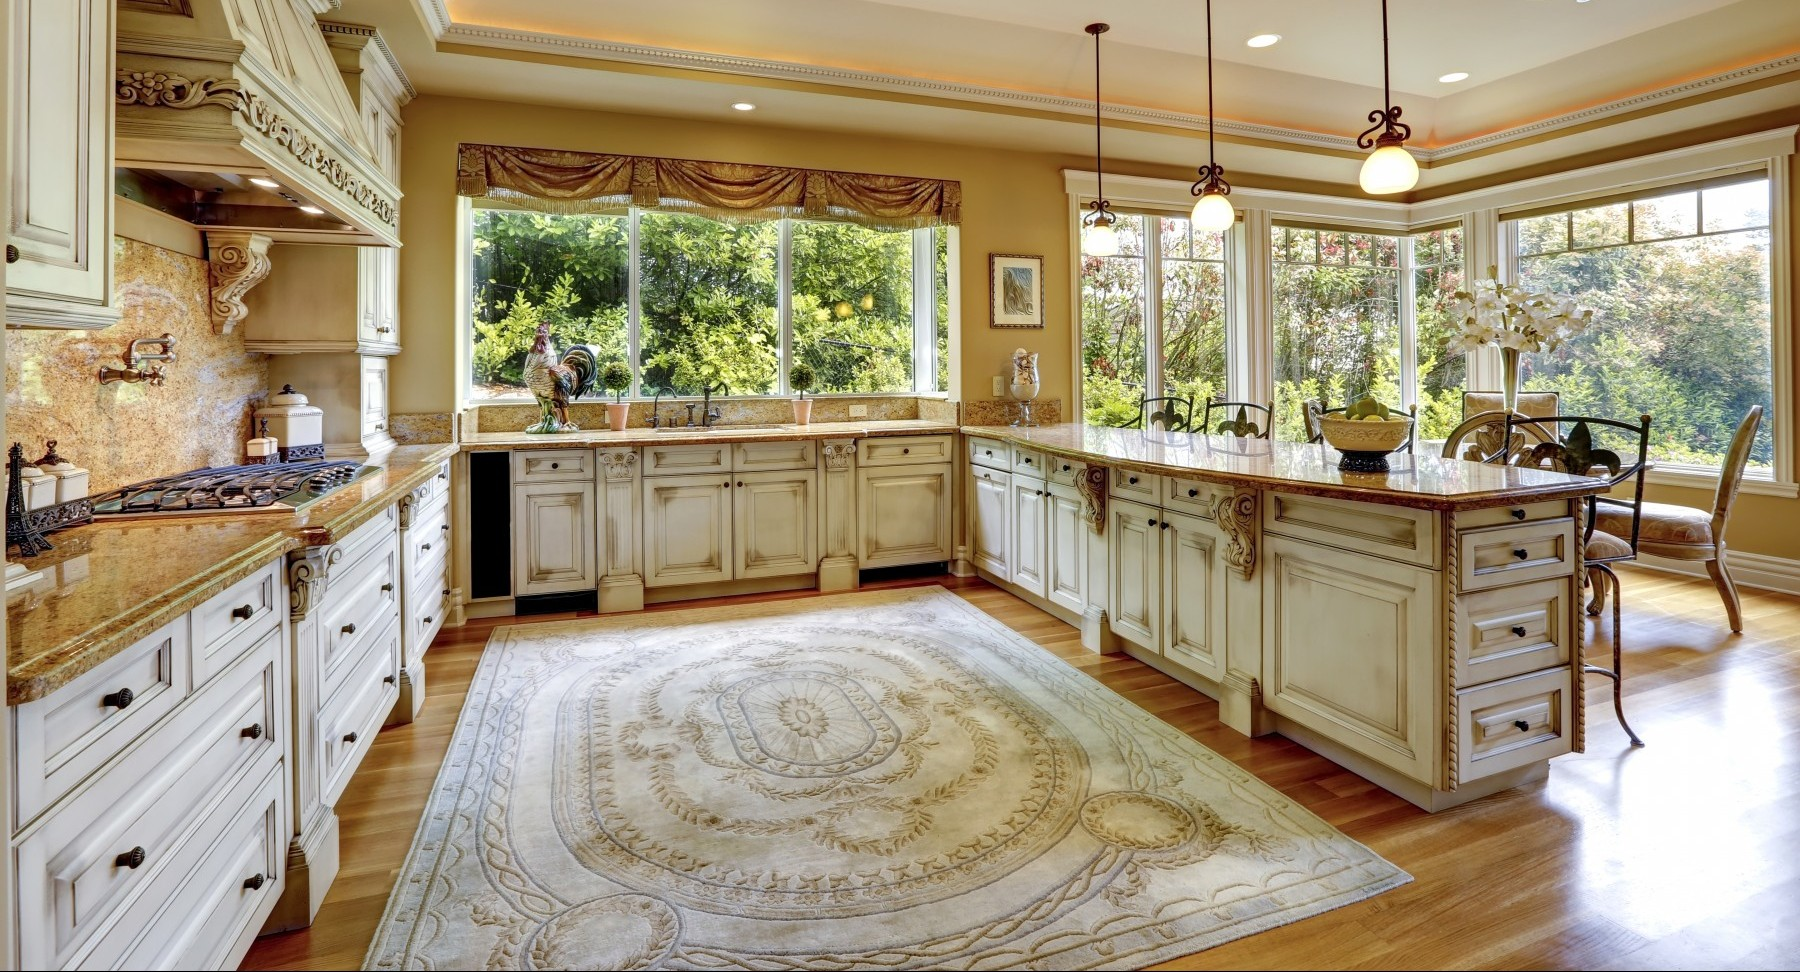 Greater Tennessee Flooring Luxury House Interior Antique